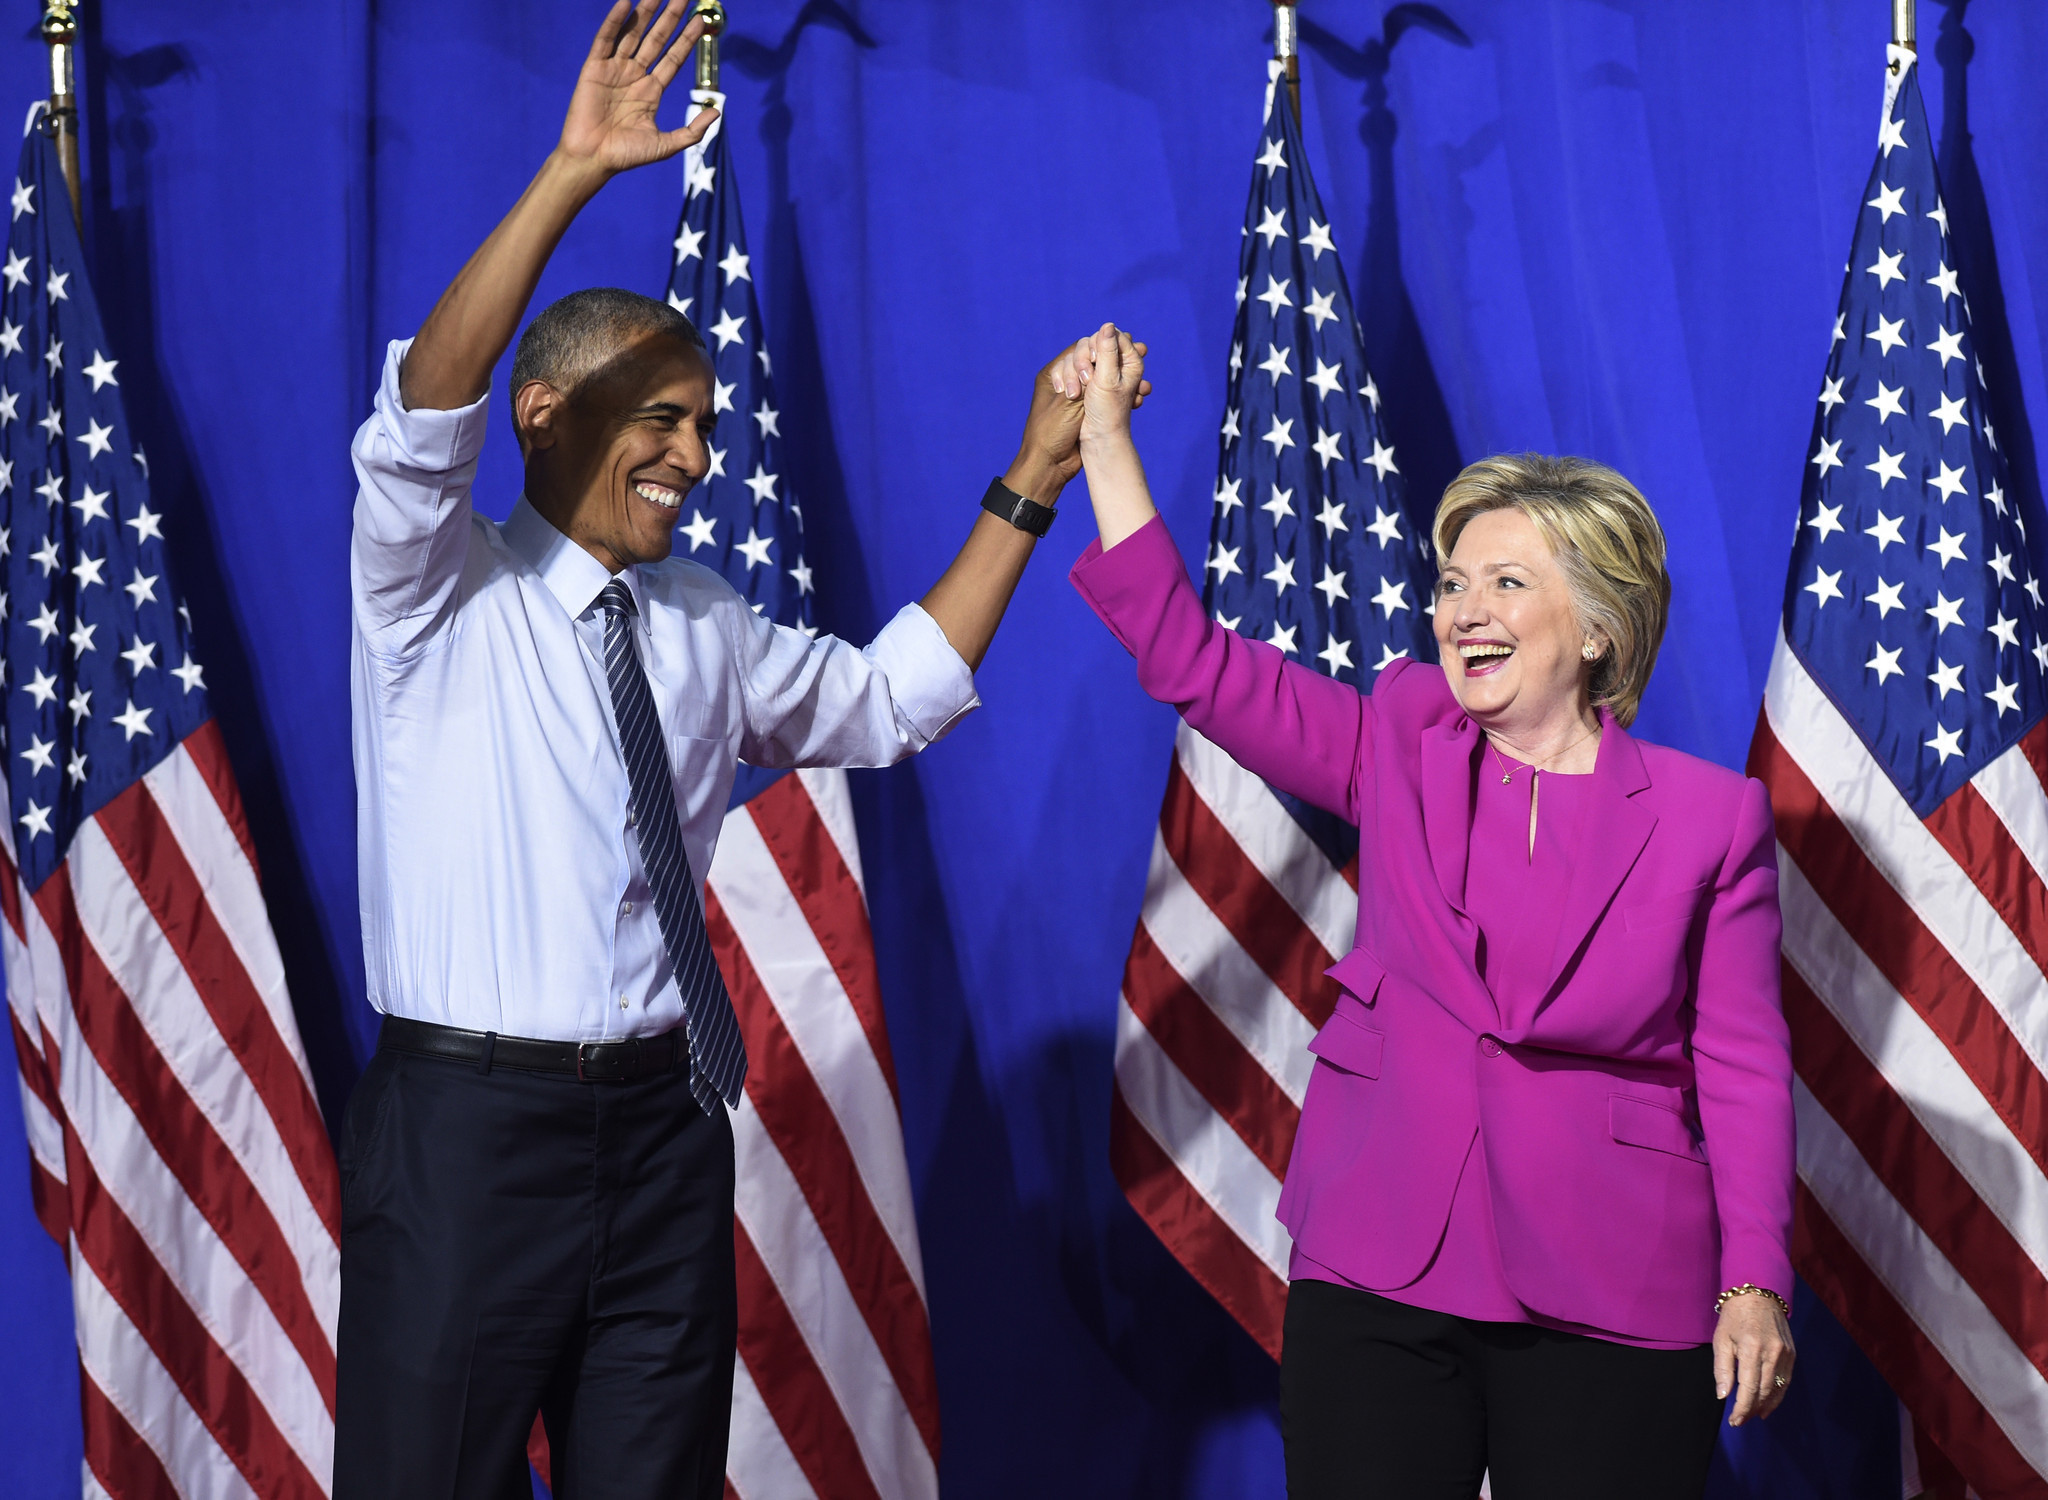 Clinton and Obama exchange insults as Democratic campaign debate gets personal